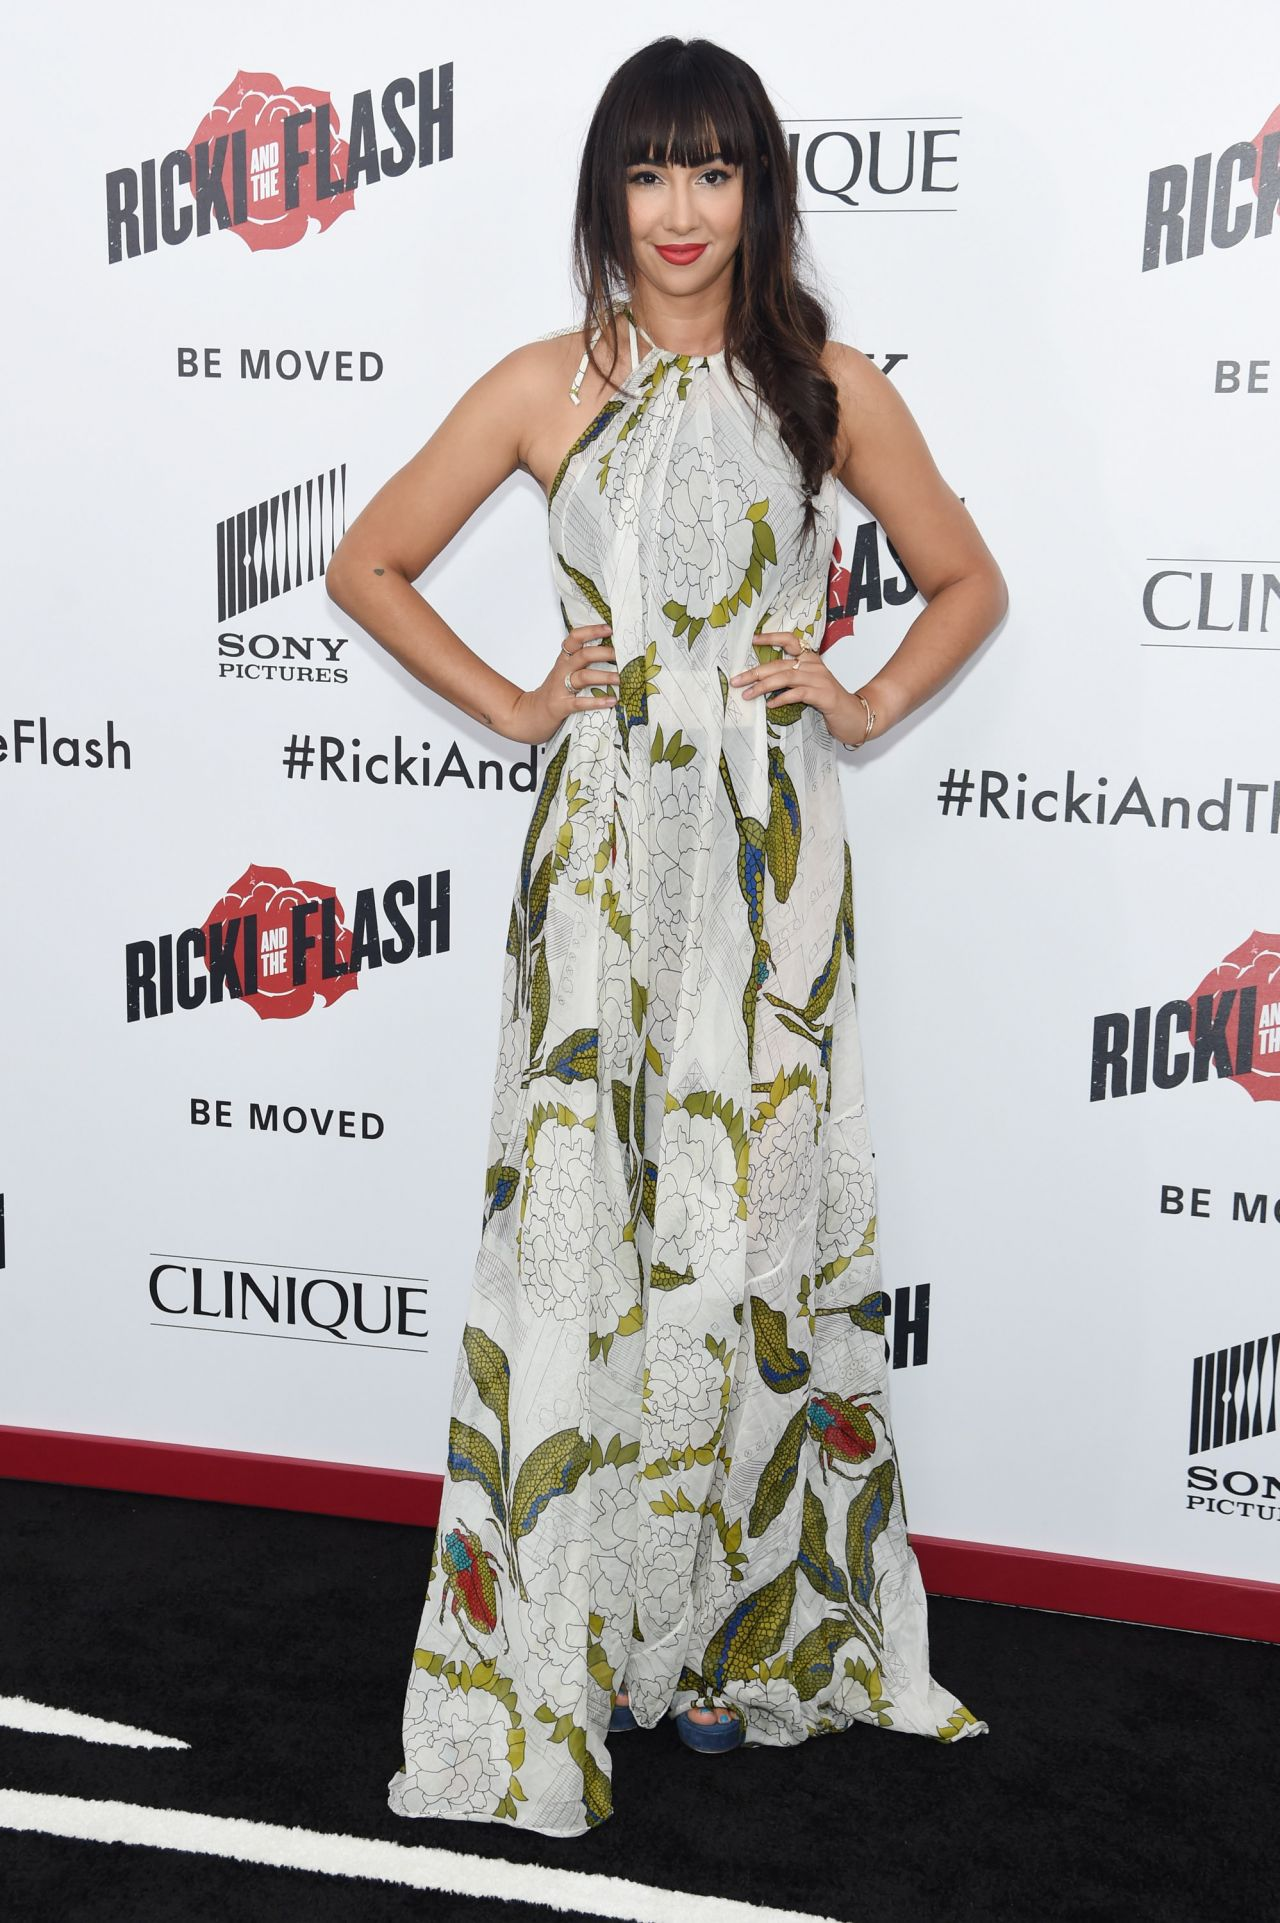 jackie-cruz-ricki-and-the-flash-pemiere-in-new-york-city_3